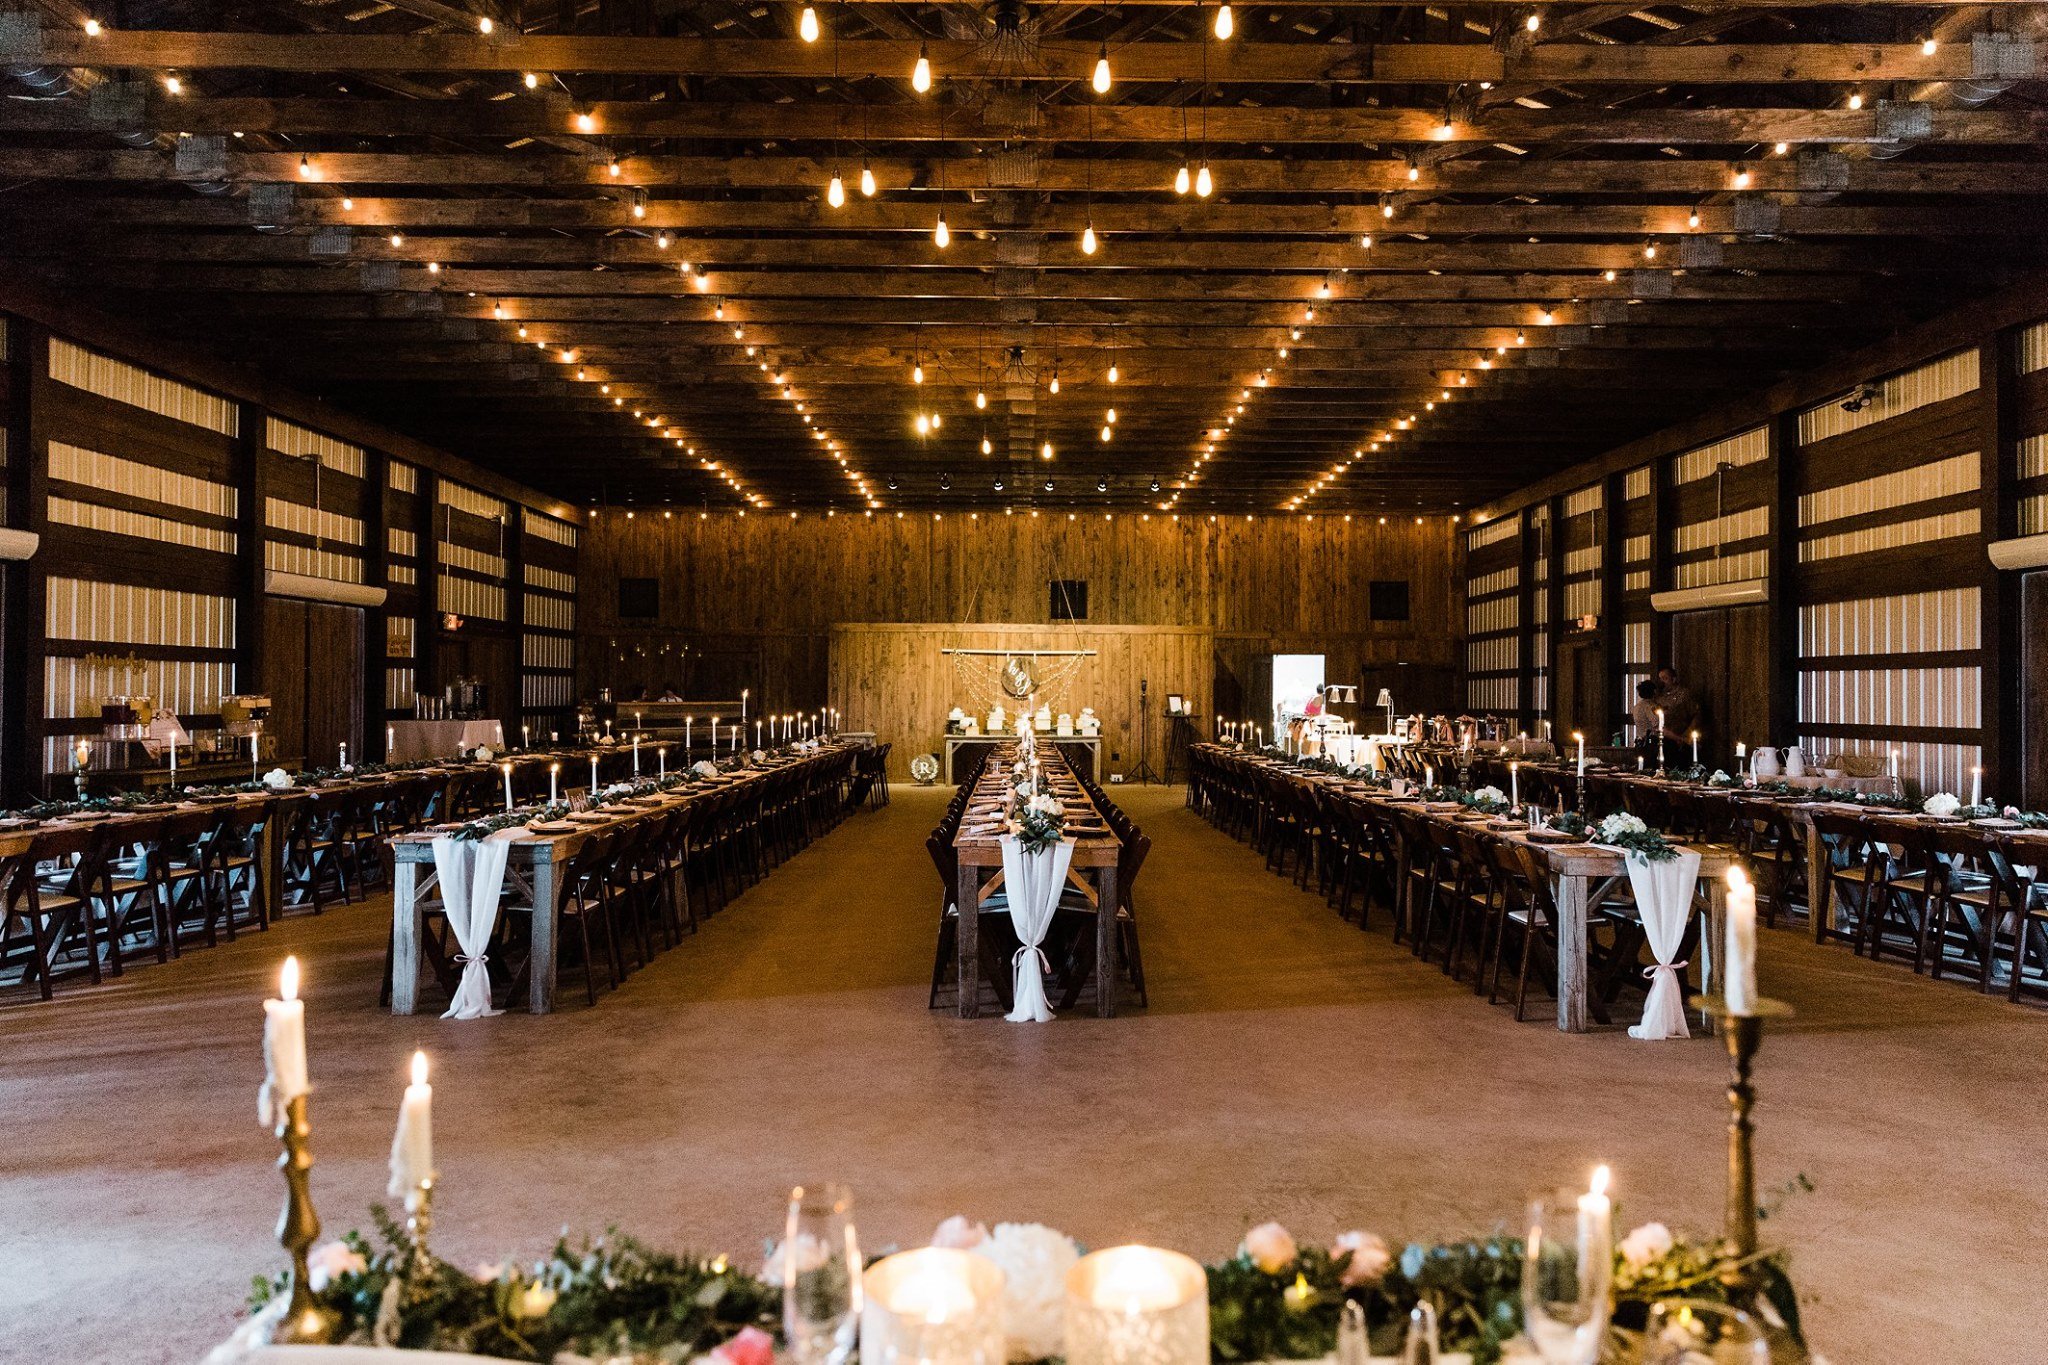 Wedding Venues In New Braunfels | Get Hitched In The Hay The Allen Farmhaus New Braunfels Wedding